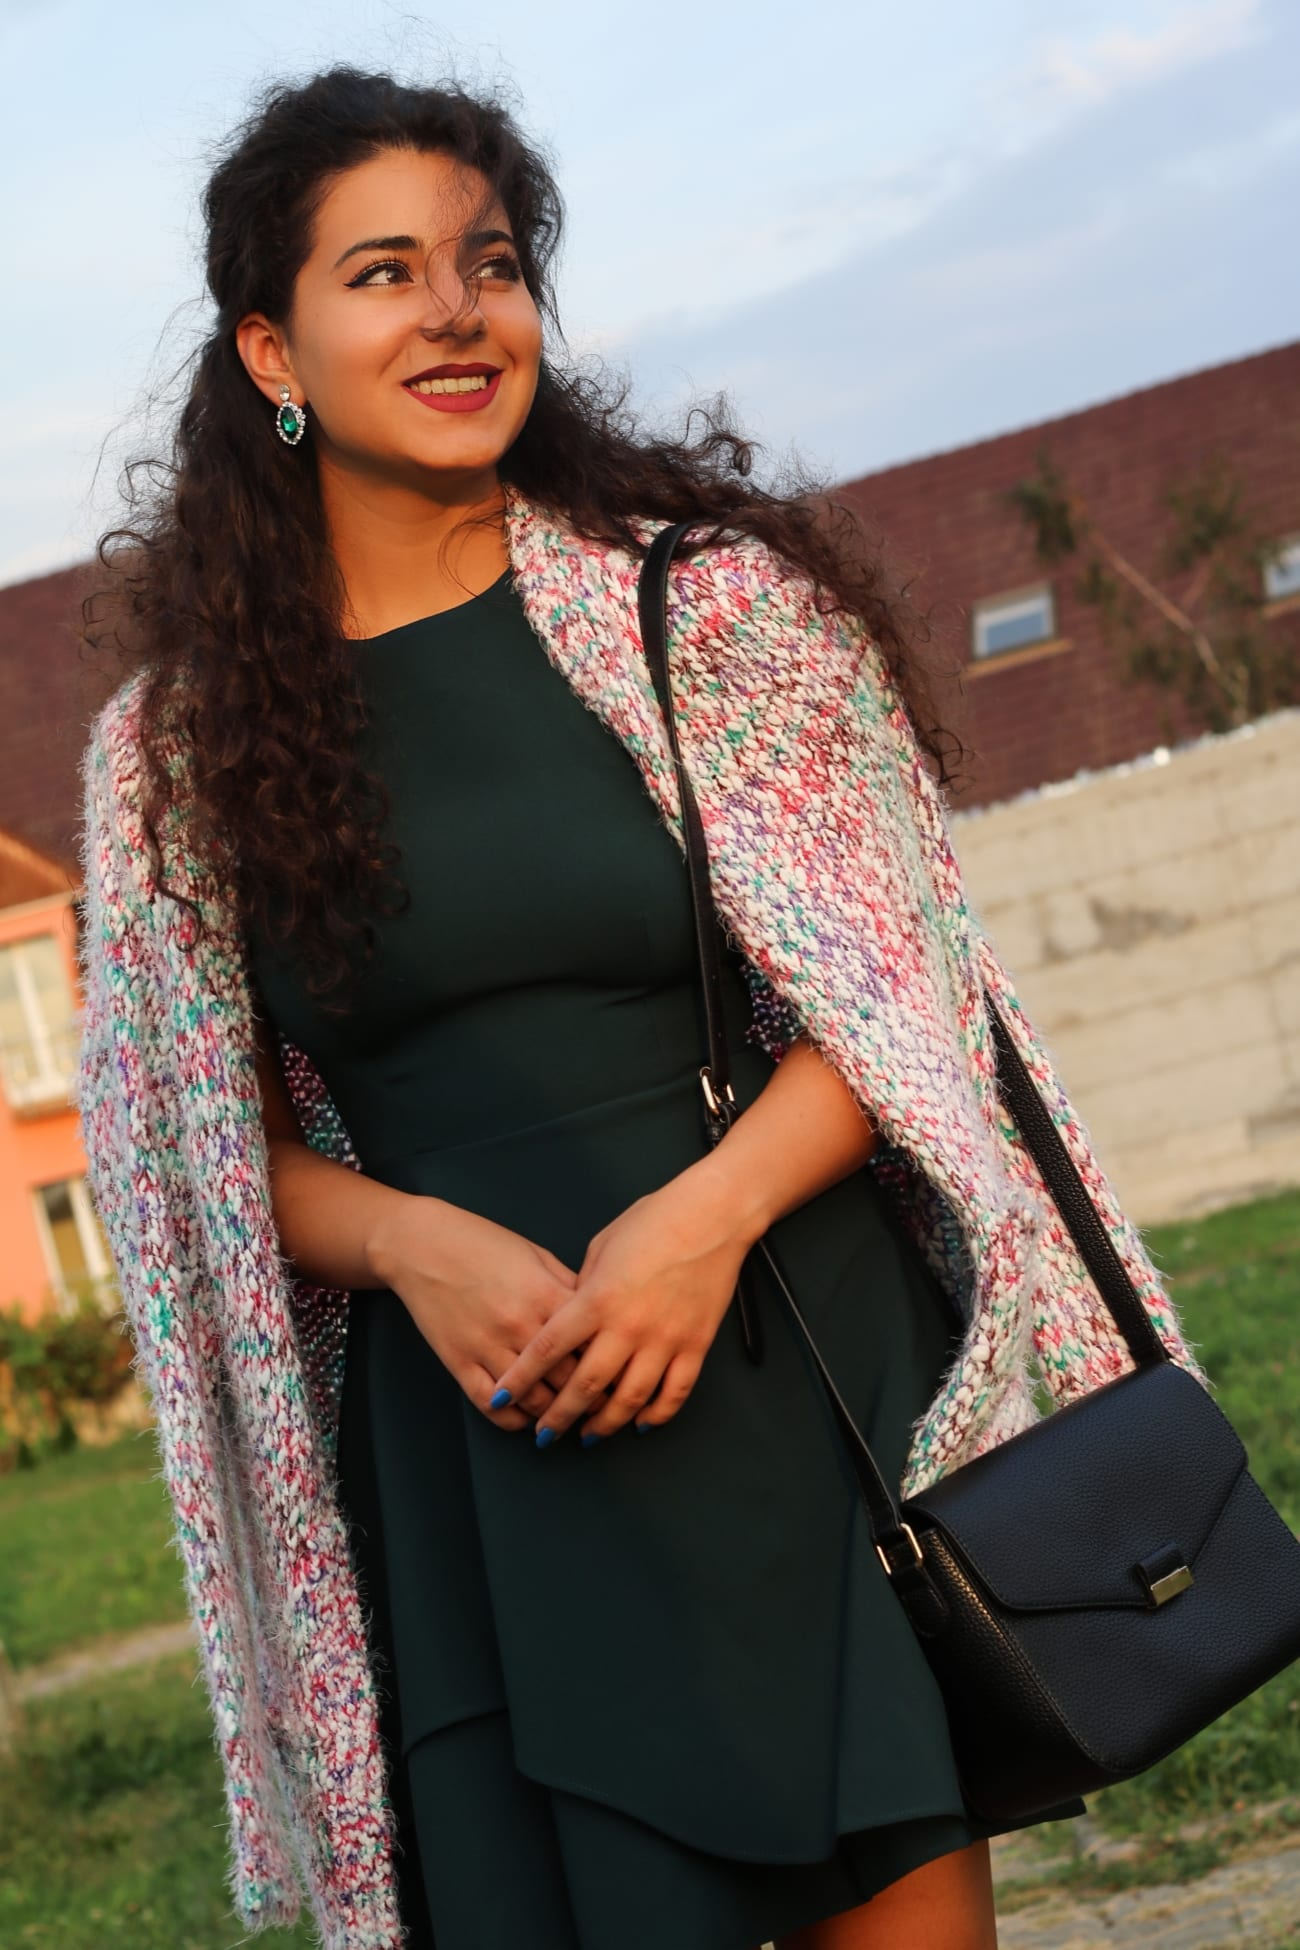 reserved-timis-roxi-rose-fashion-blogger-romania-shopping-city-timisoara-concurs-back-to-office-outfit-transitional-idei-news-stiri-24